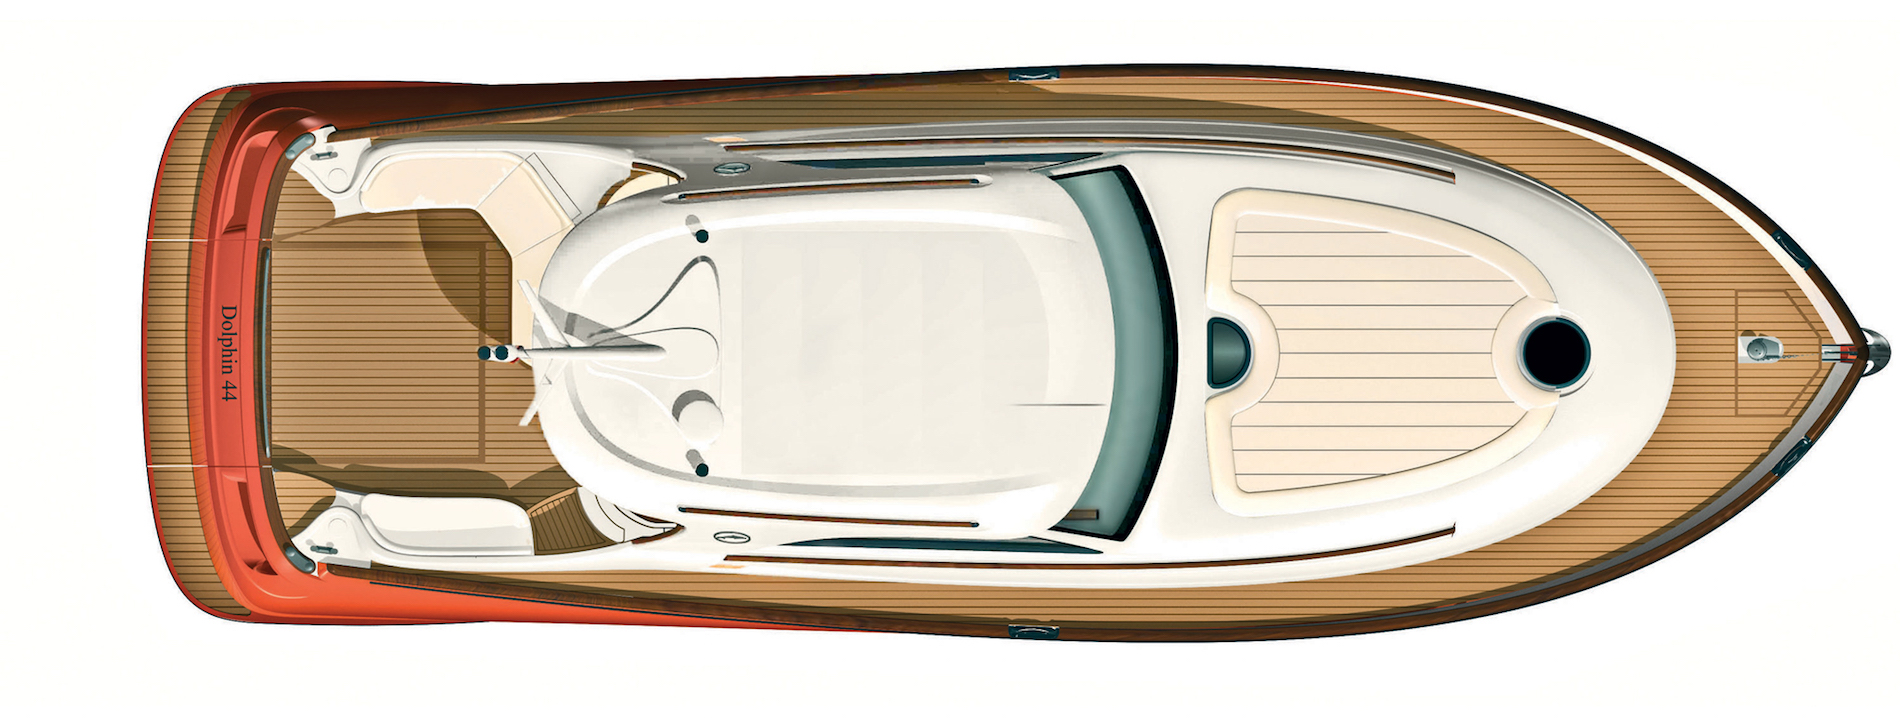 Mochi Craft Dolphin 44' Layout (img-1)